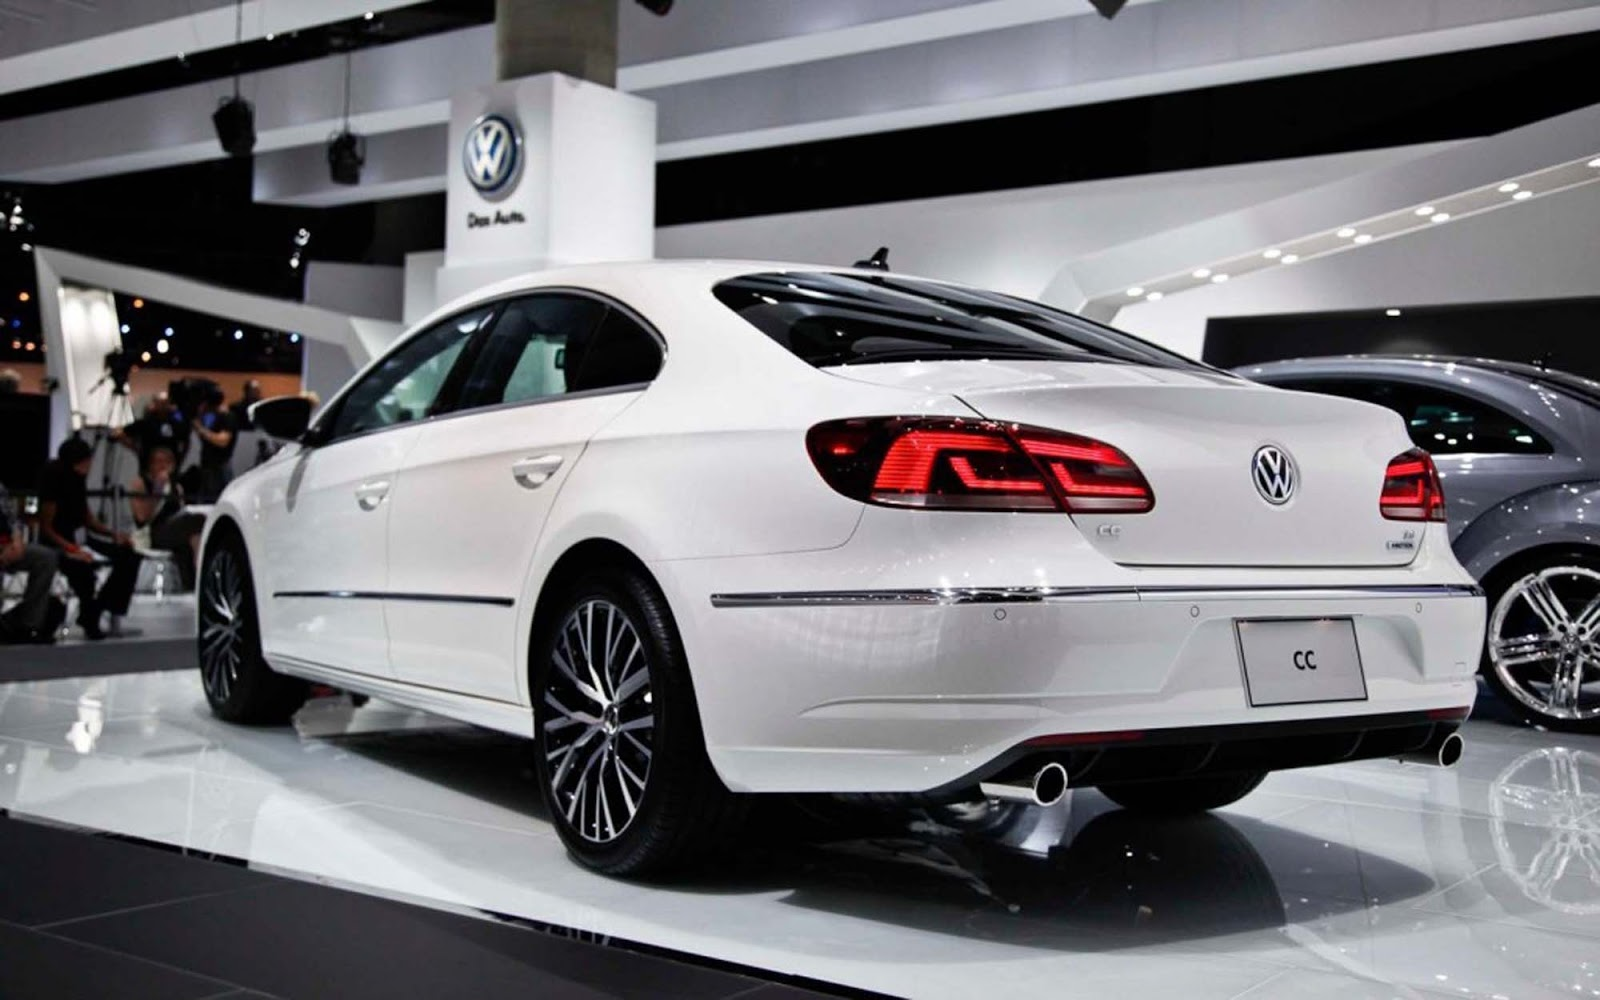 2015 volkswagen golf cc 1024 x 768 wallpaper new thing in automotive. Black Bedroom Furniture Sets. Home Design Ideas